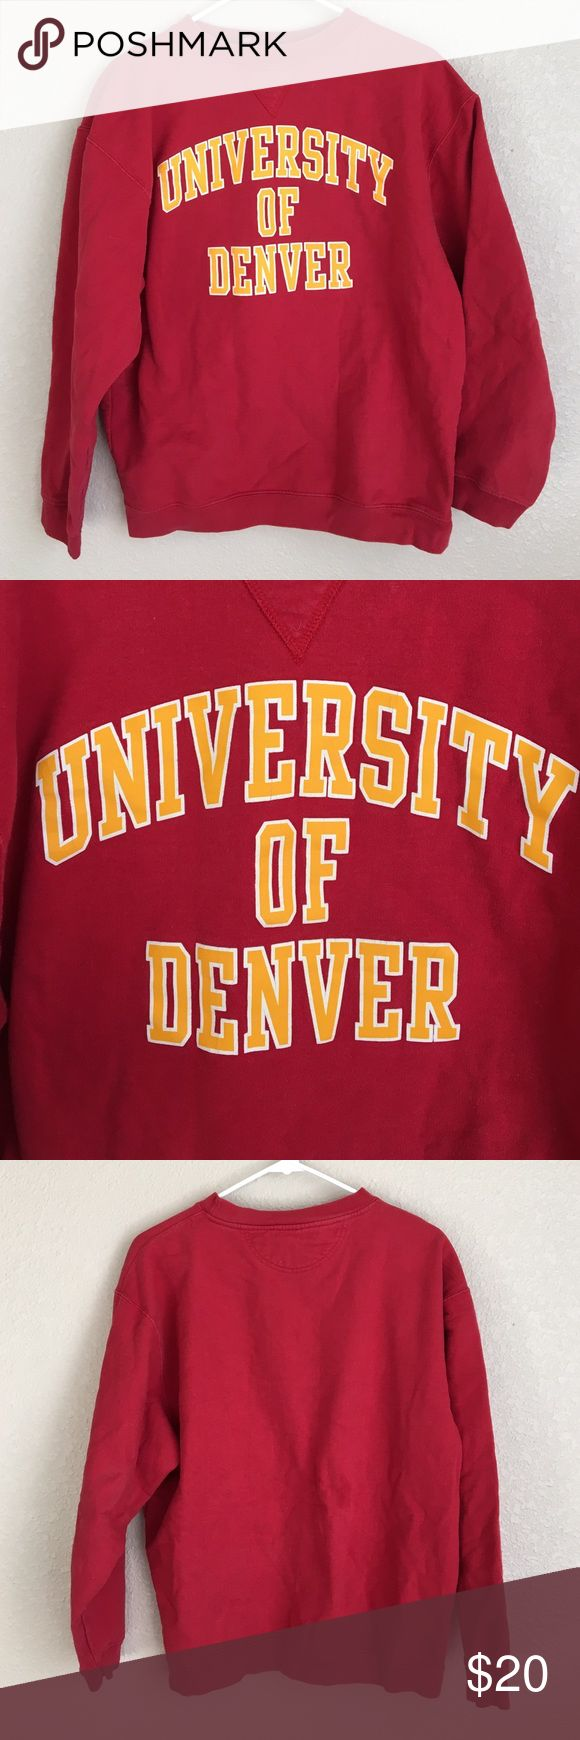 University of Denver vintage style sweatshirt DU University of Denver vintage style sweatshirt. Red with gold letters. Size L but looks like a M. Letters have some hairline cracks. There is a spot on the back of the sweatshirt. Sold as is. Haven't tried spot remover. Vintage Tops Sweatshirts & Hoodies